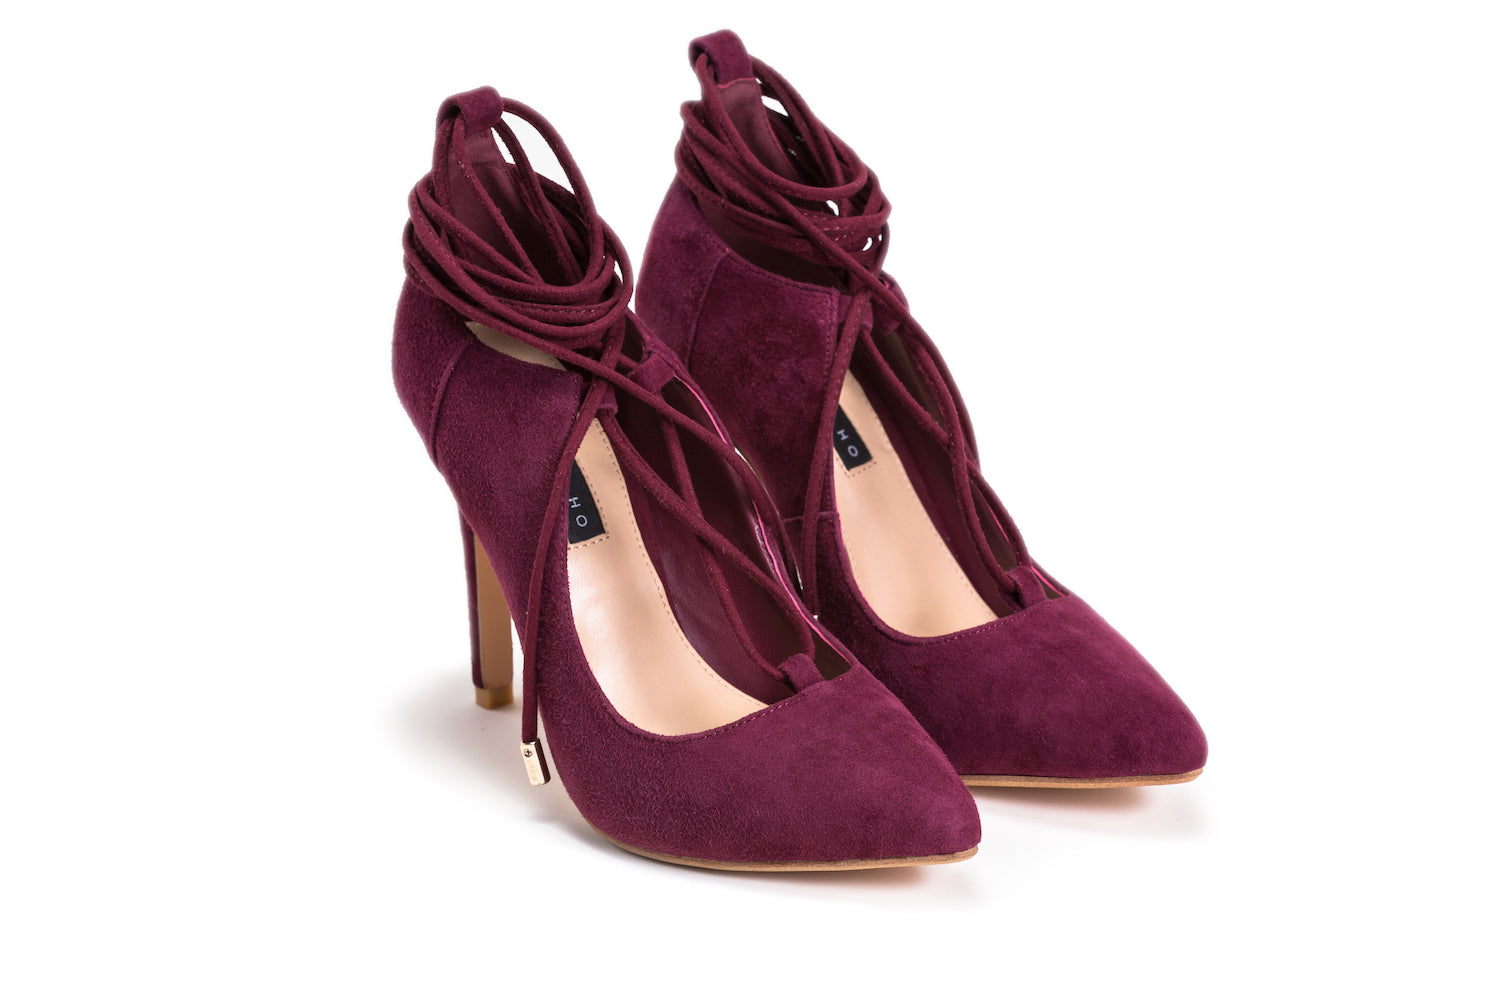 Sexy maroon suede leather lace-up stiletto heels.